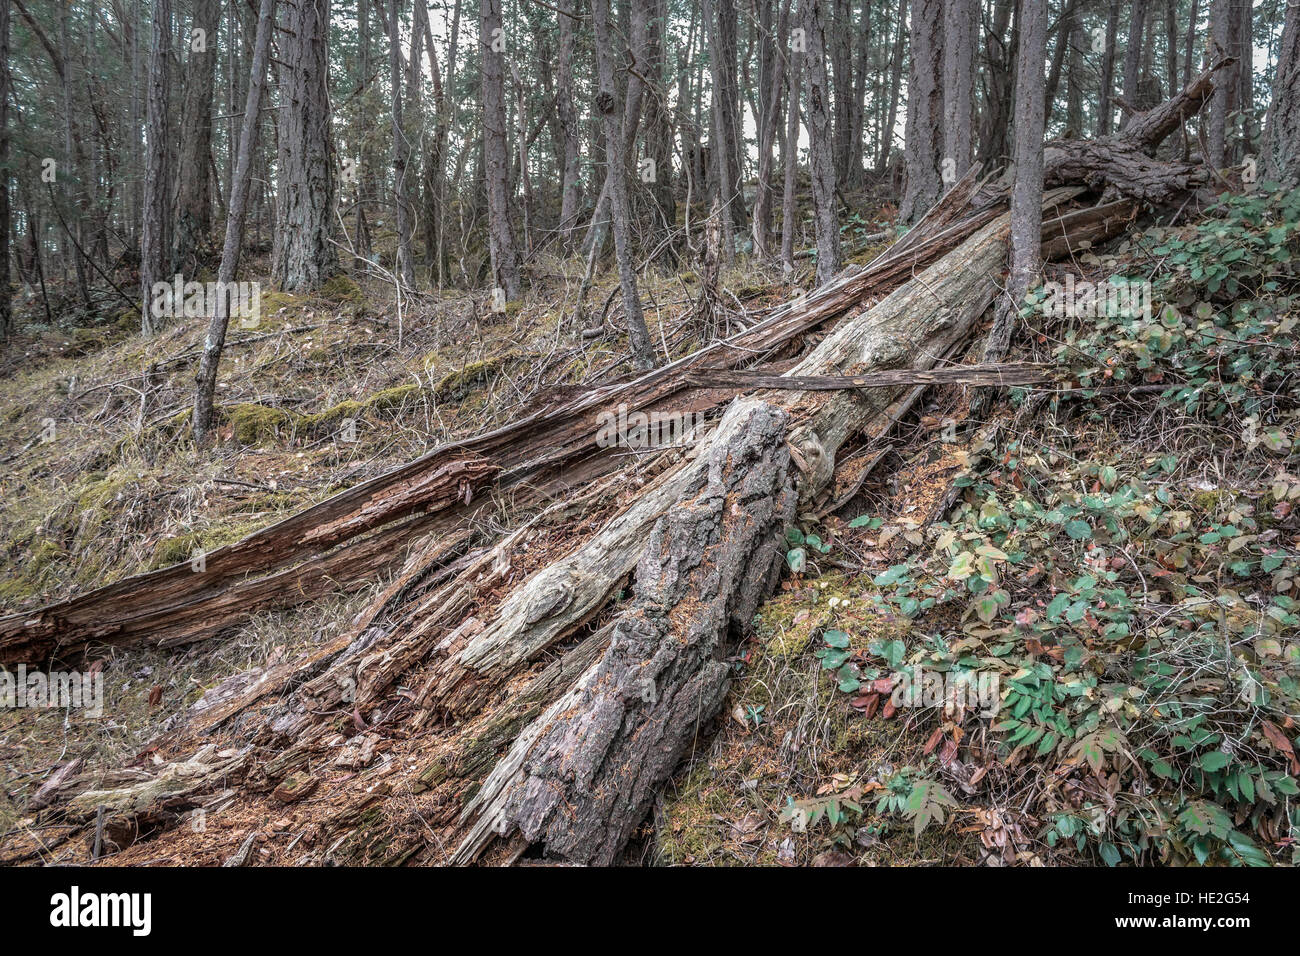 A fallen tree trunk, split open and decaying, lies on a mossy hillside in a Douglas fir forest in British Columbia. - Stock Image